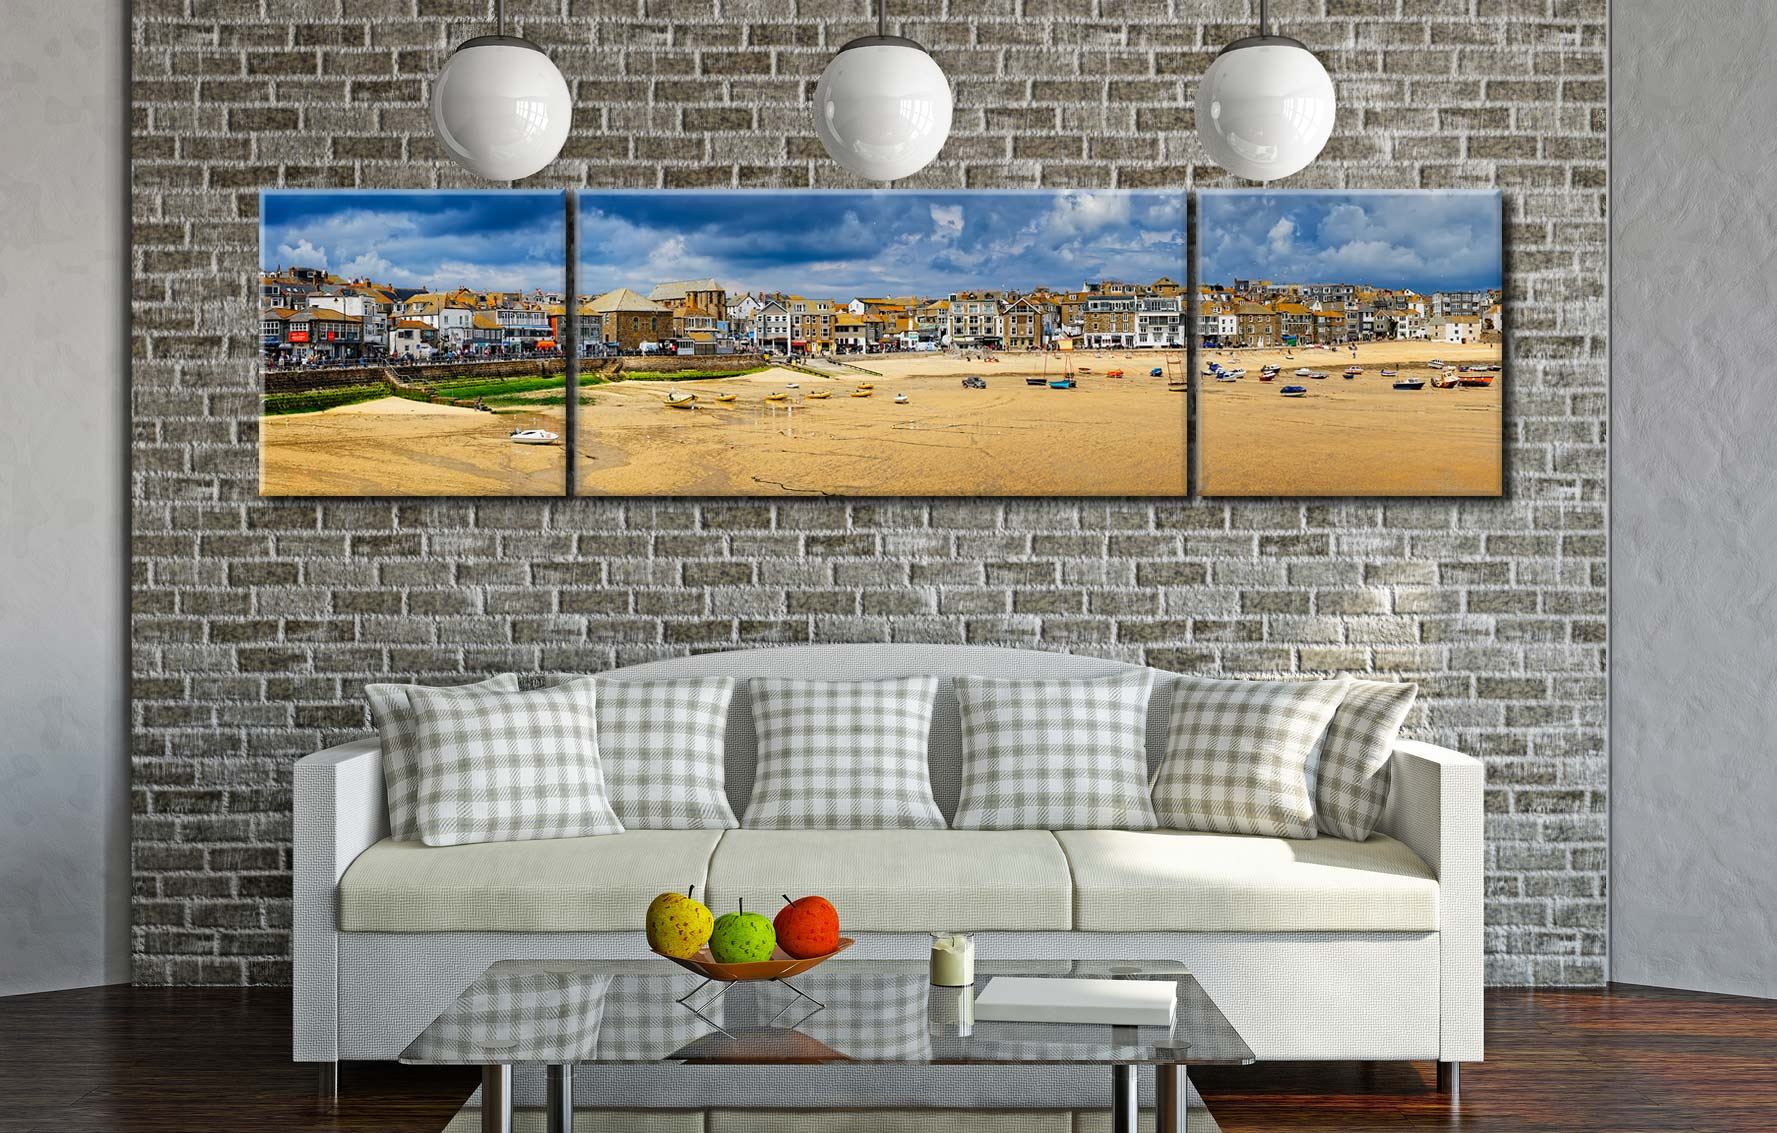 St Ives Cloudy Panorama 2 - 3 Panel Wide Centre Canvas on Wall